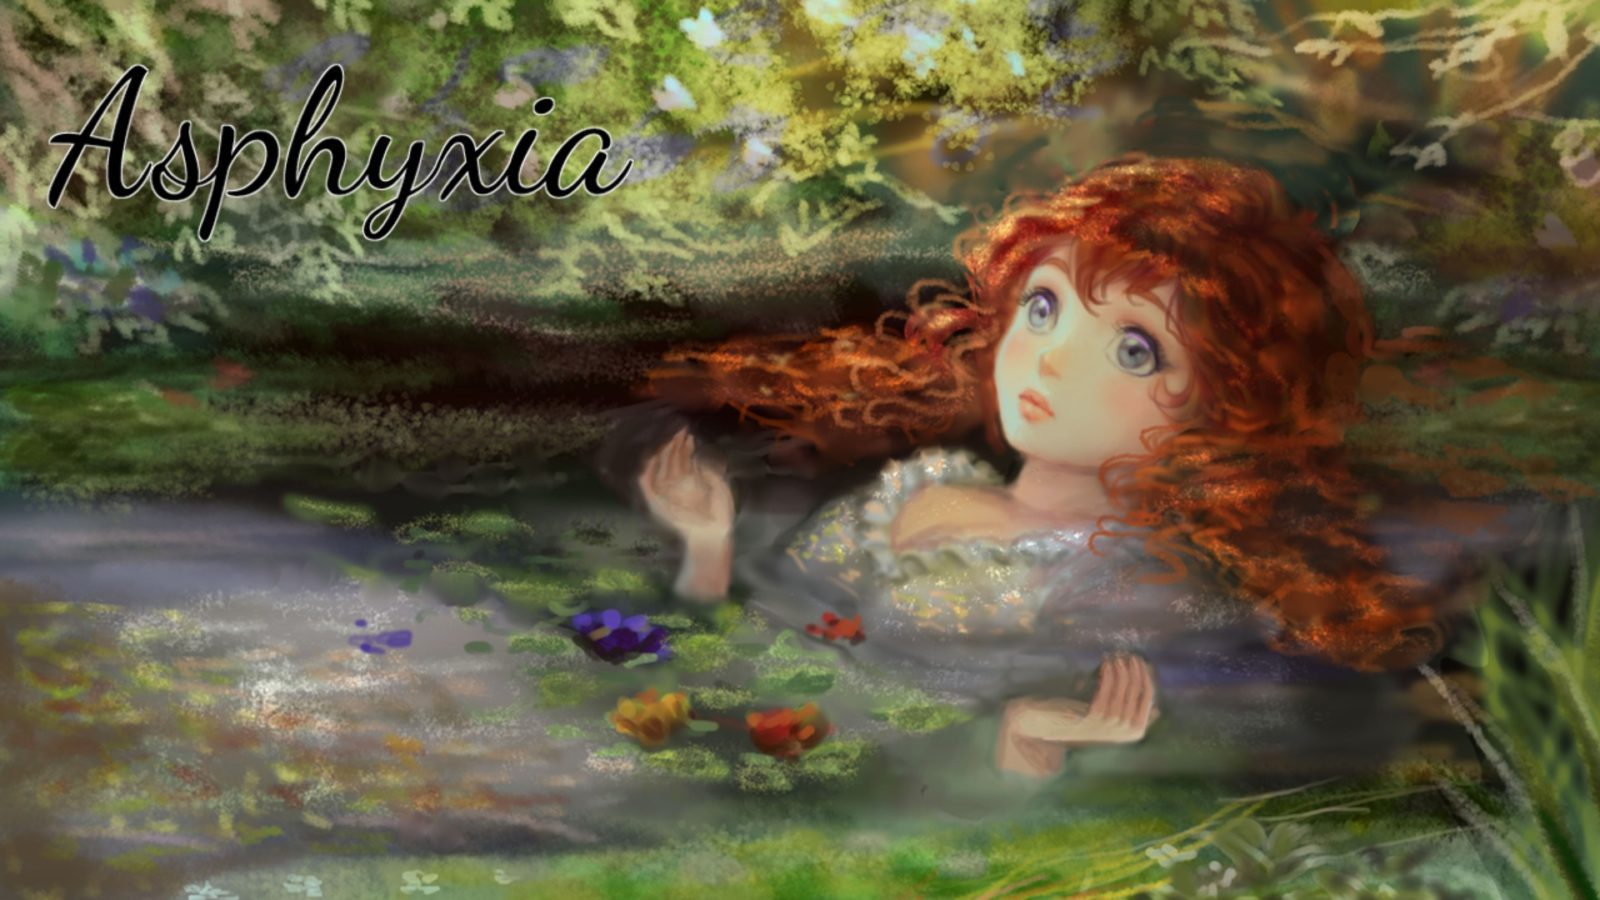 Asphyxia main pic for review